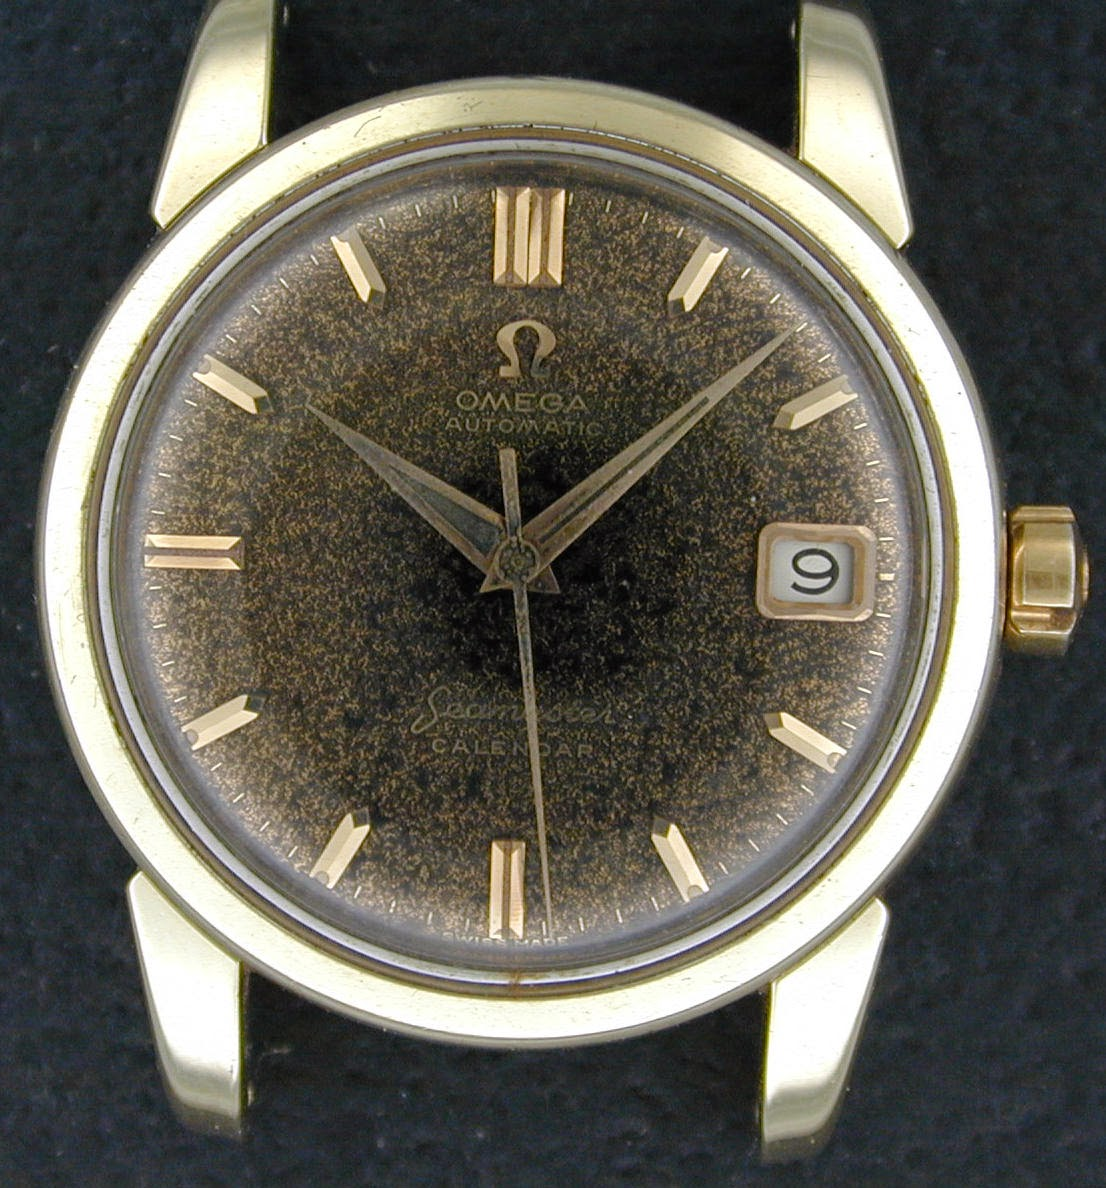 Omega_tropical_dial